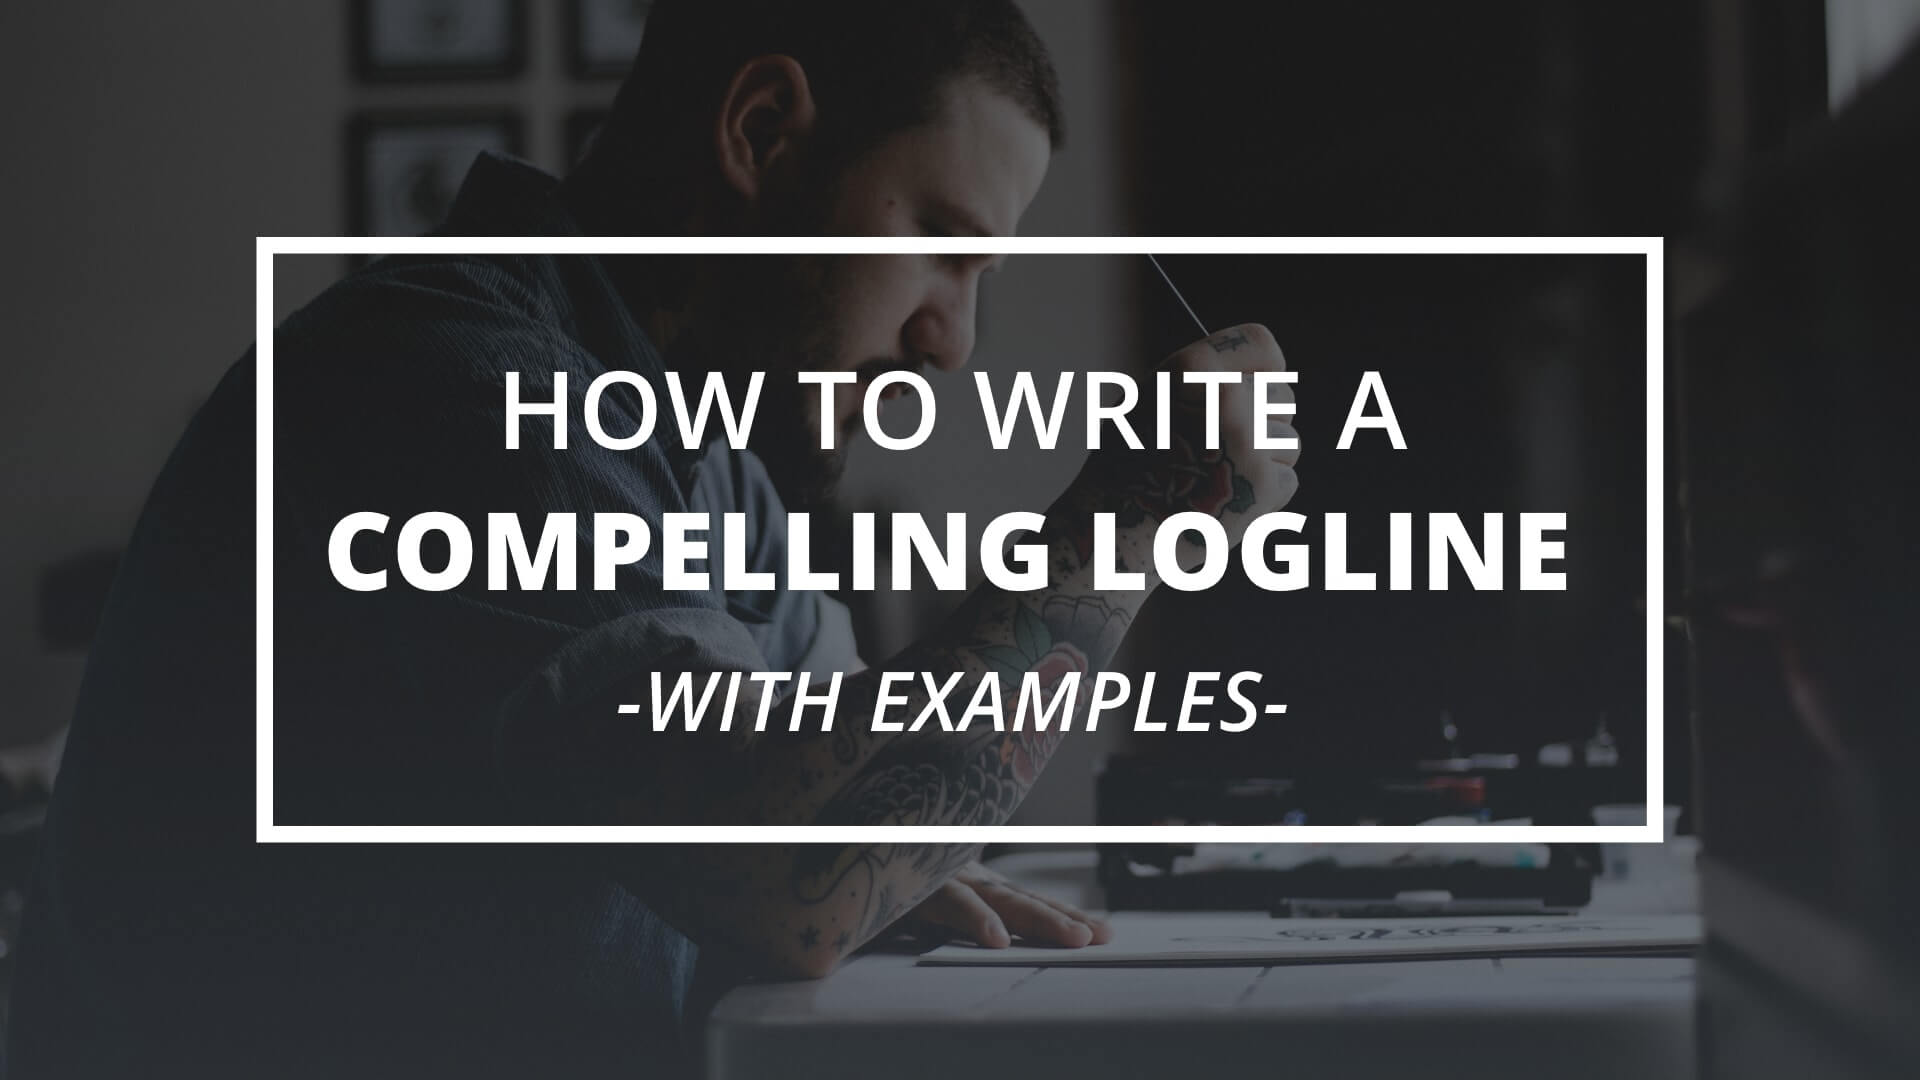 How to Write a Compelling Logline (with a Logline Examples) - Featured - StudioBinder